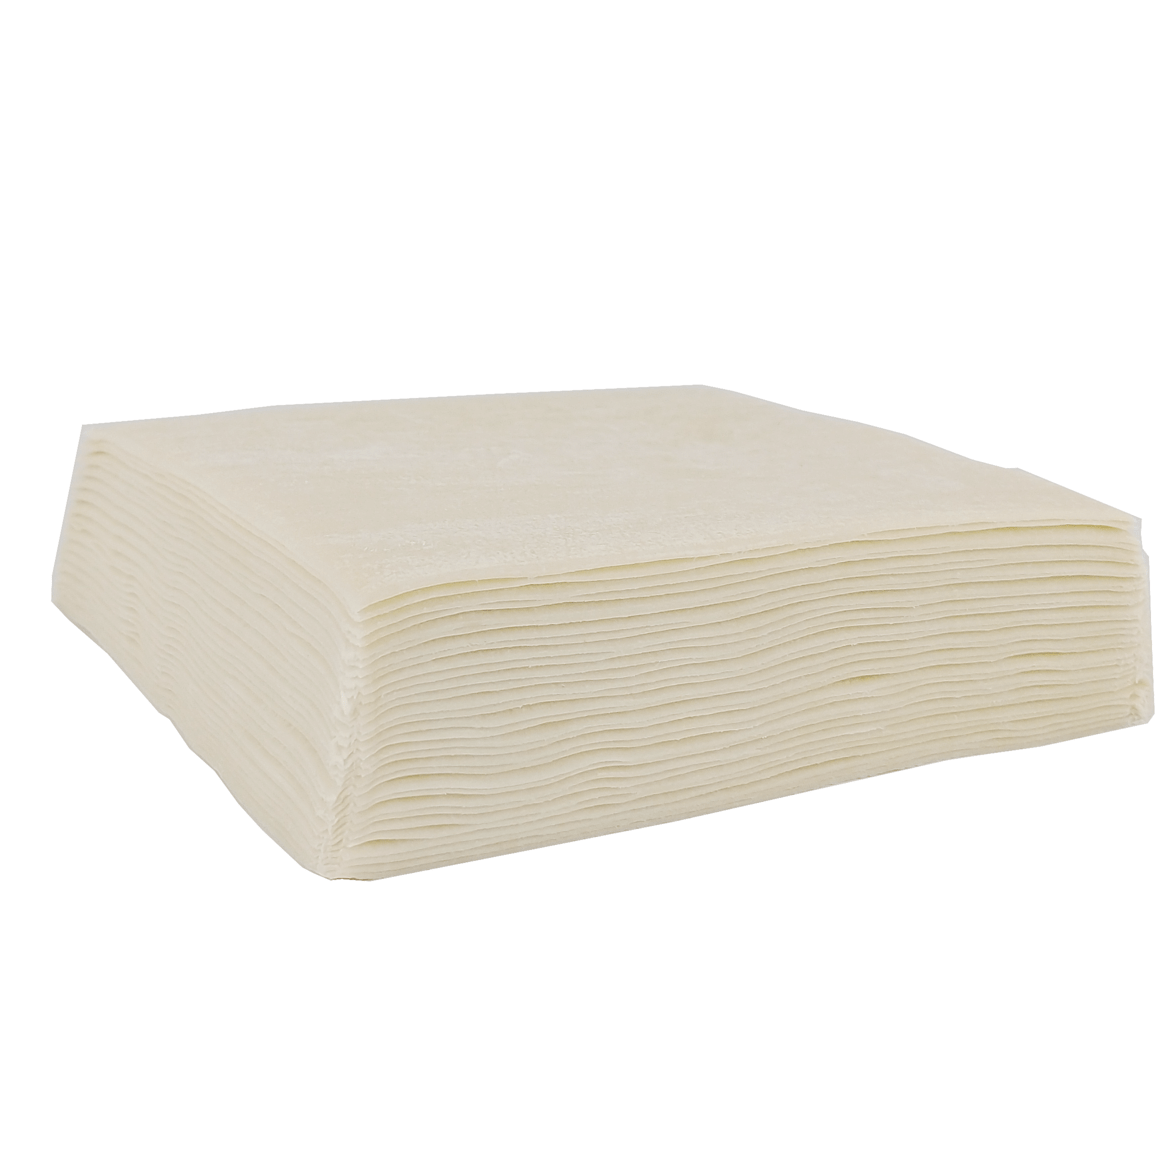 Stack of square shaped eggroll wrappers